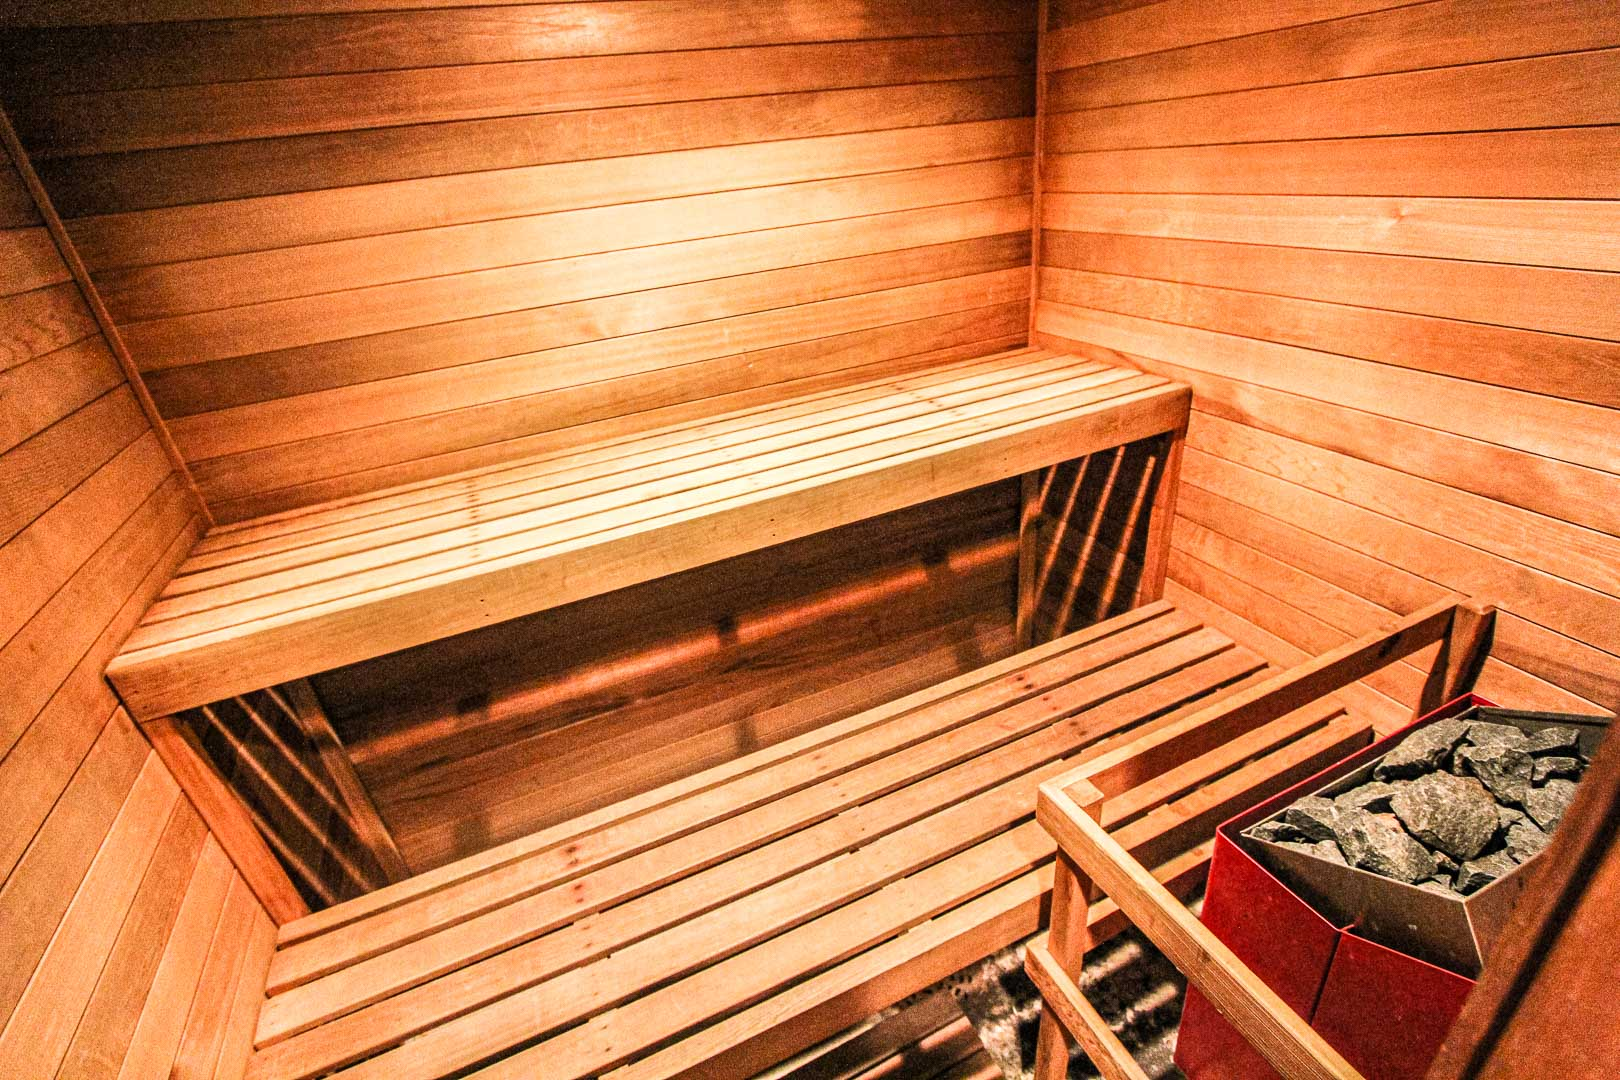 A relaxing sauna room at VRI's Sunburst Resort in Steamboat Springs, Colorado.